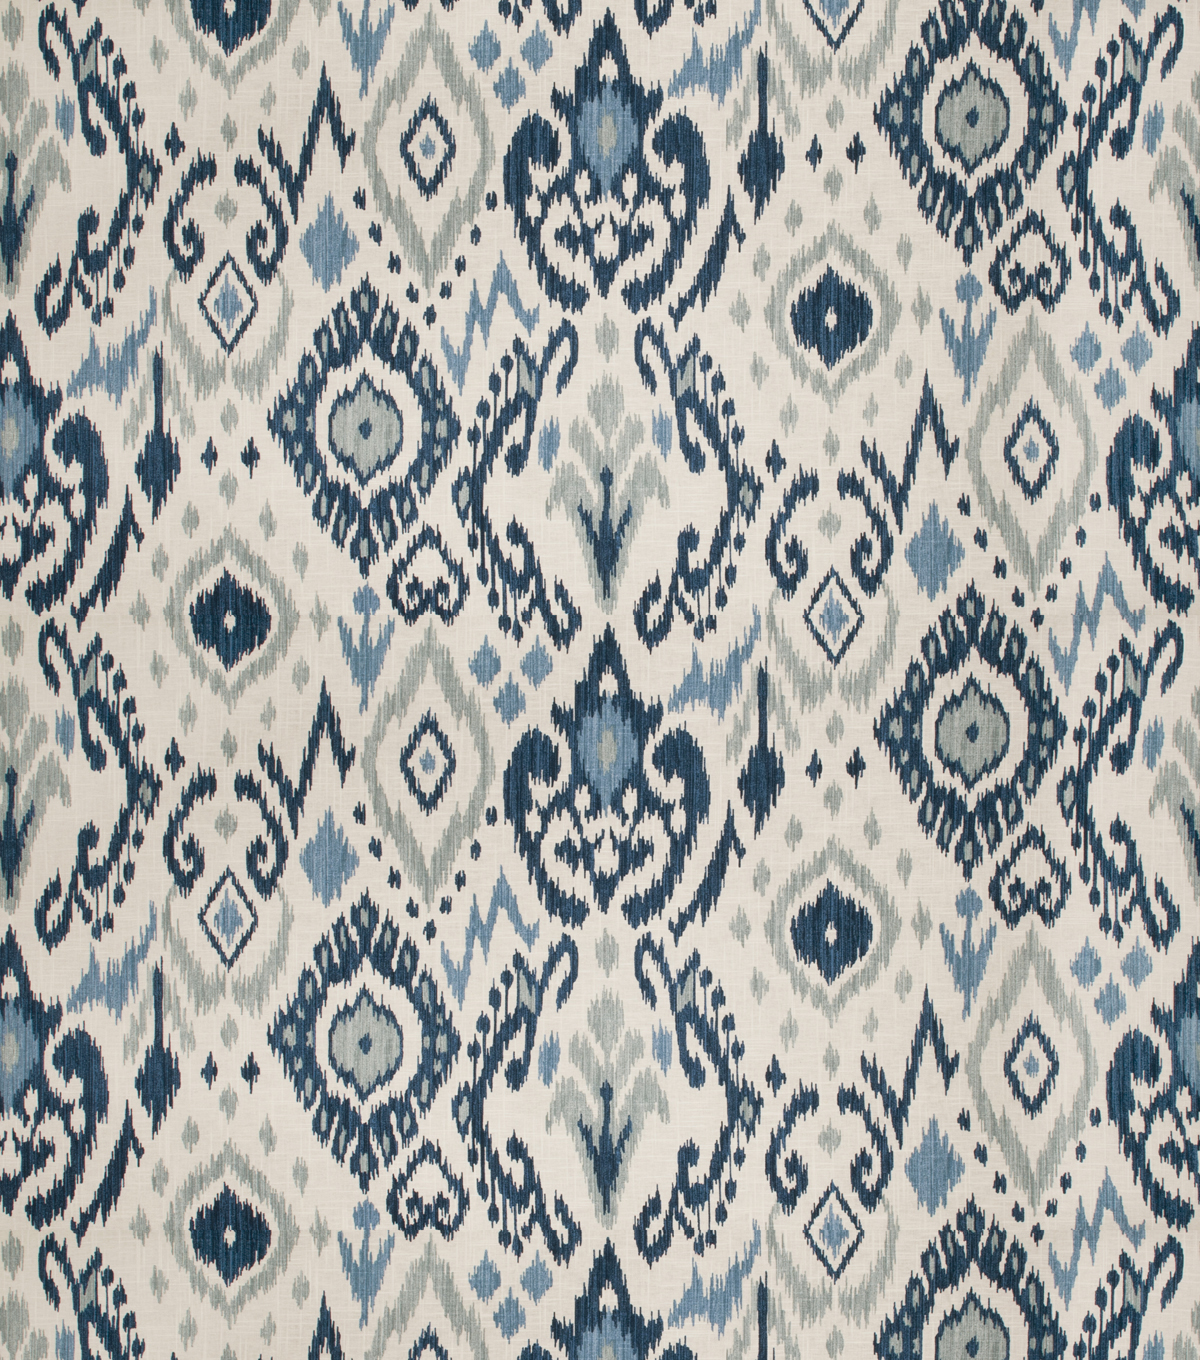 Eaton Square Upholstery Decor Fabric 54\u0022-Frisco/Blue